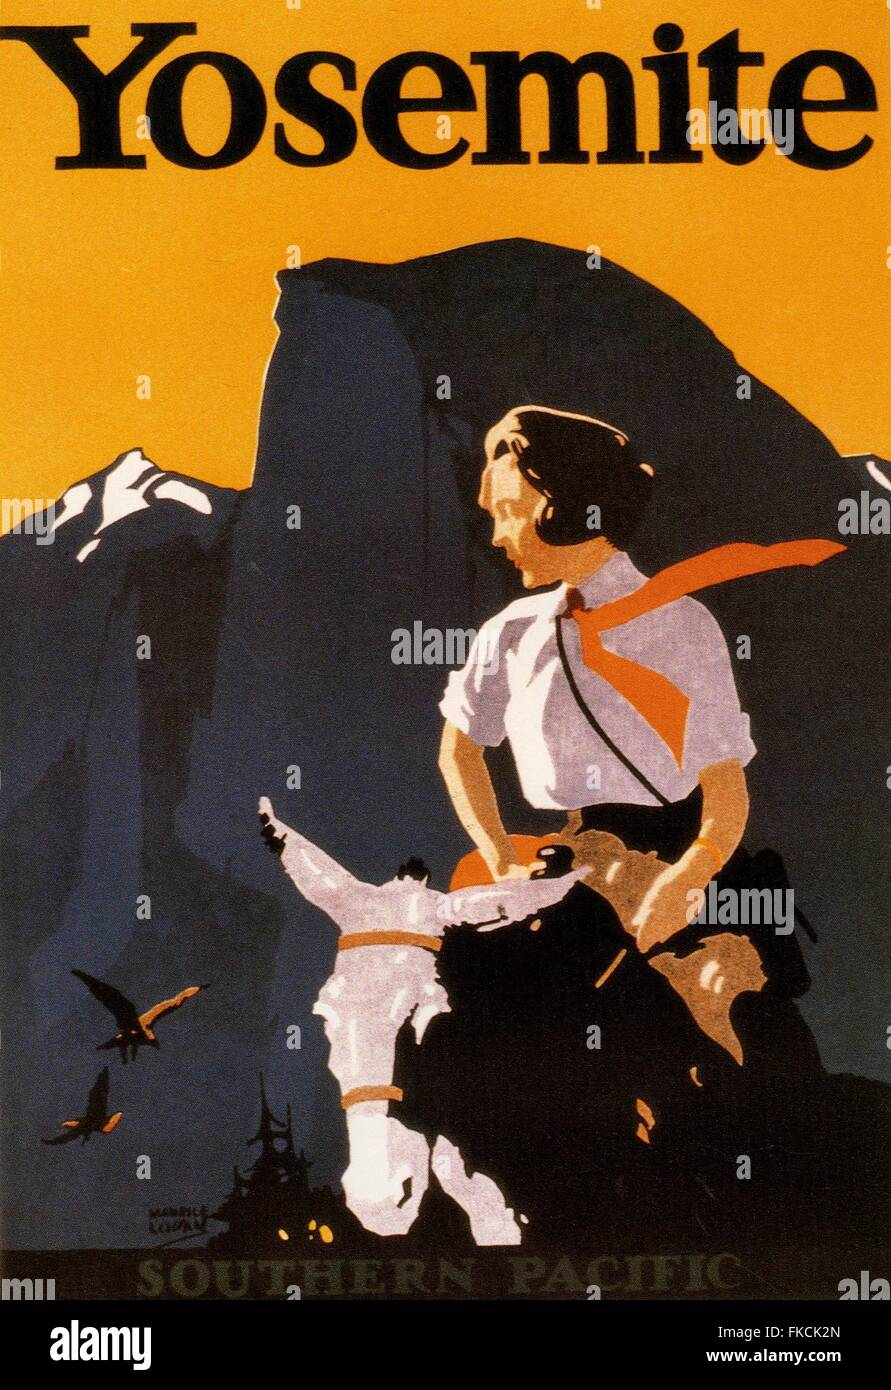 1920s USA Southern Pacific Railway Poster - Stock Image